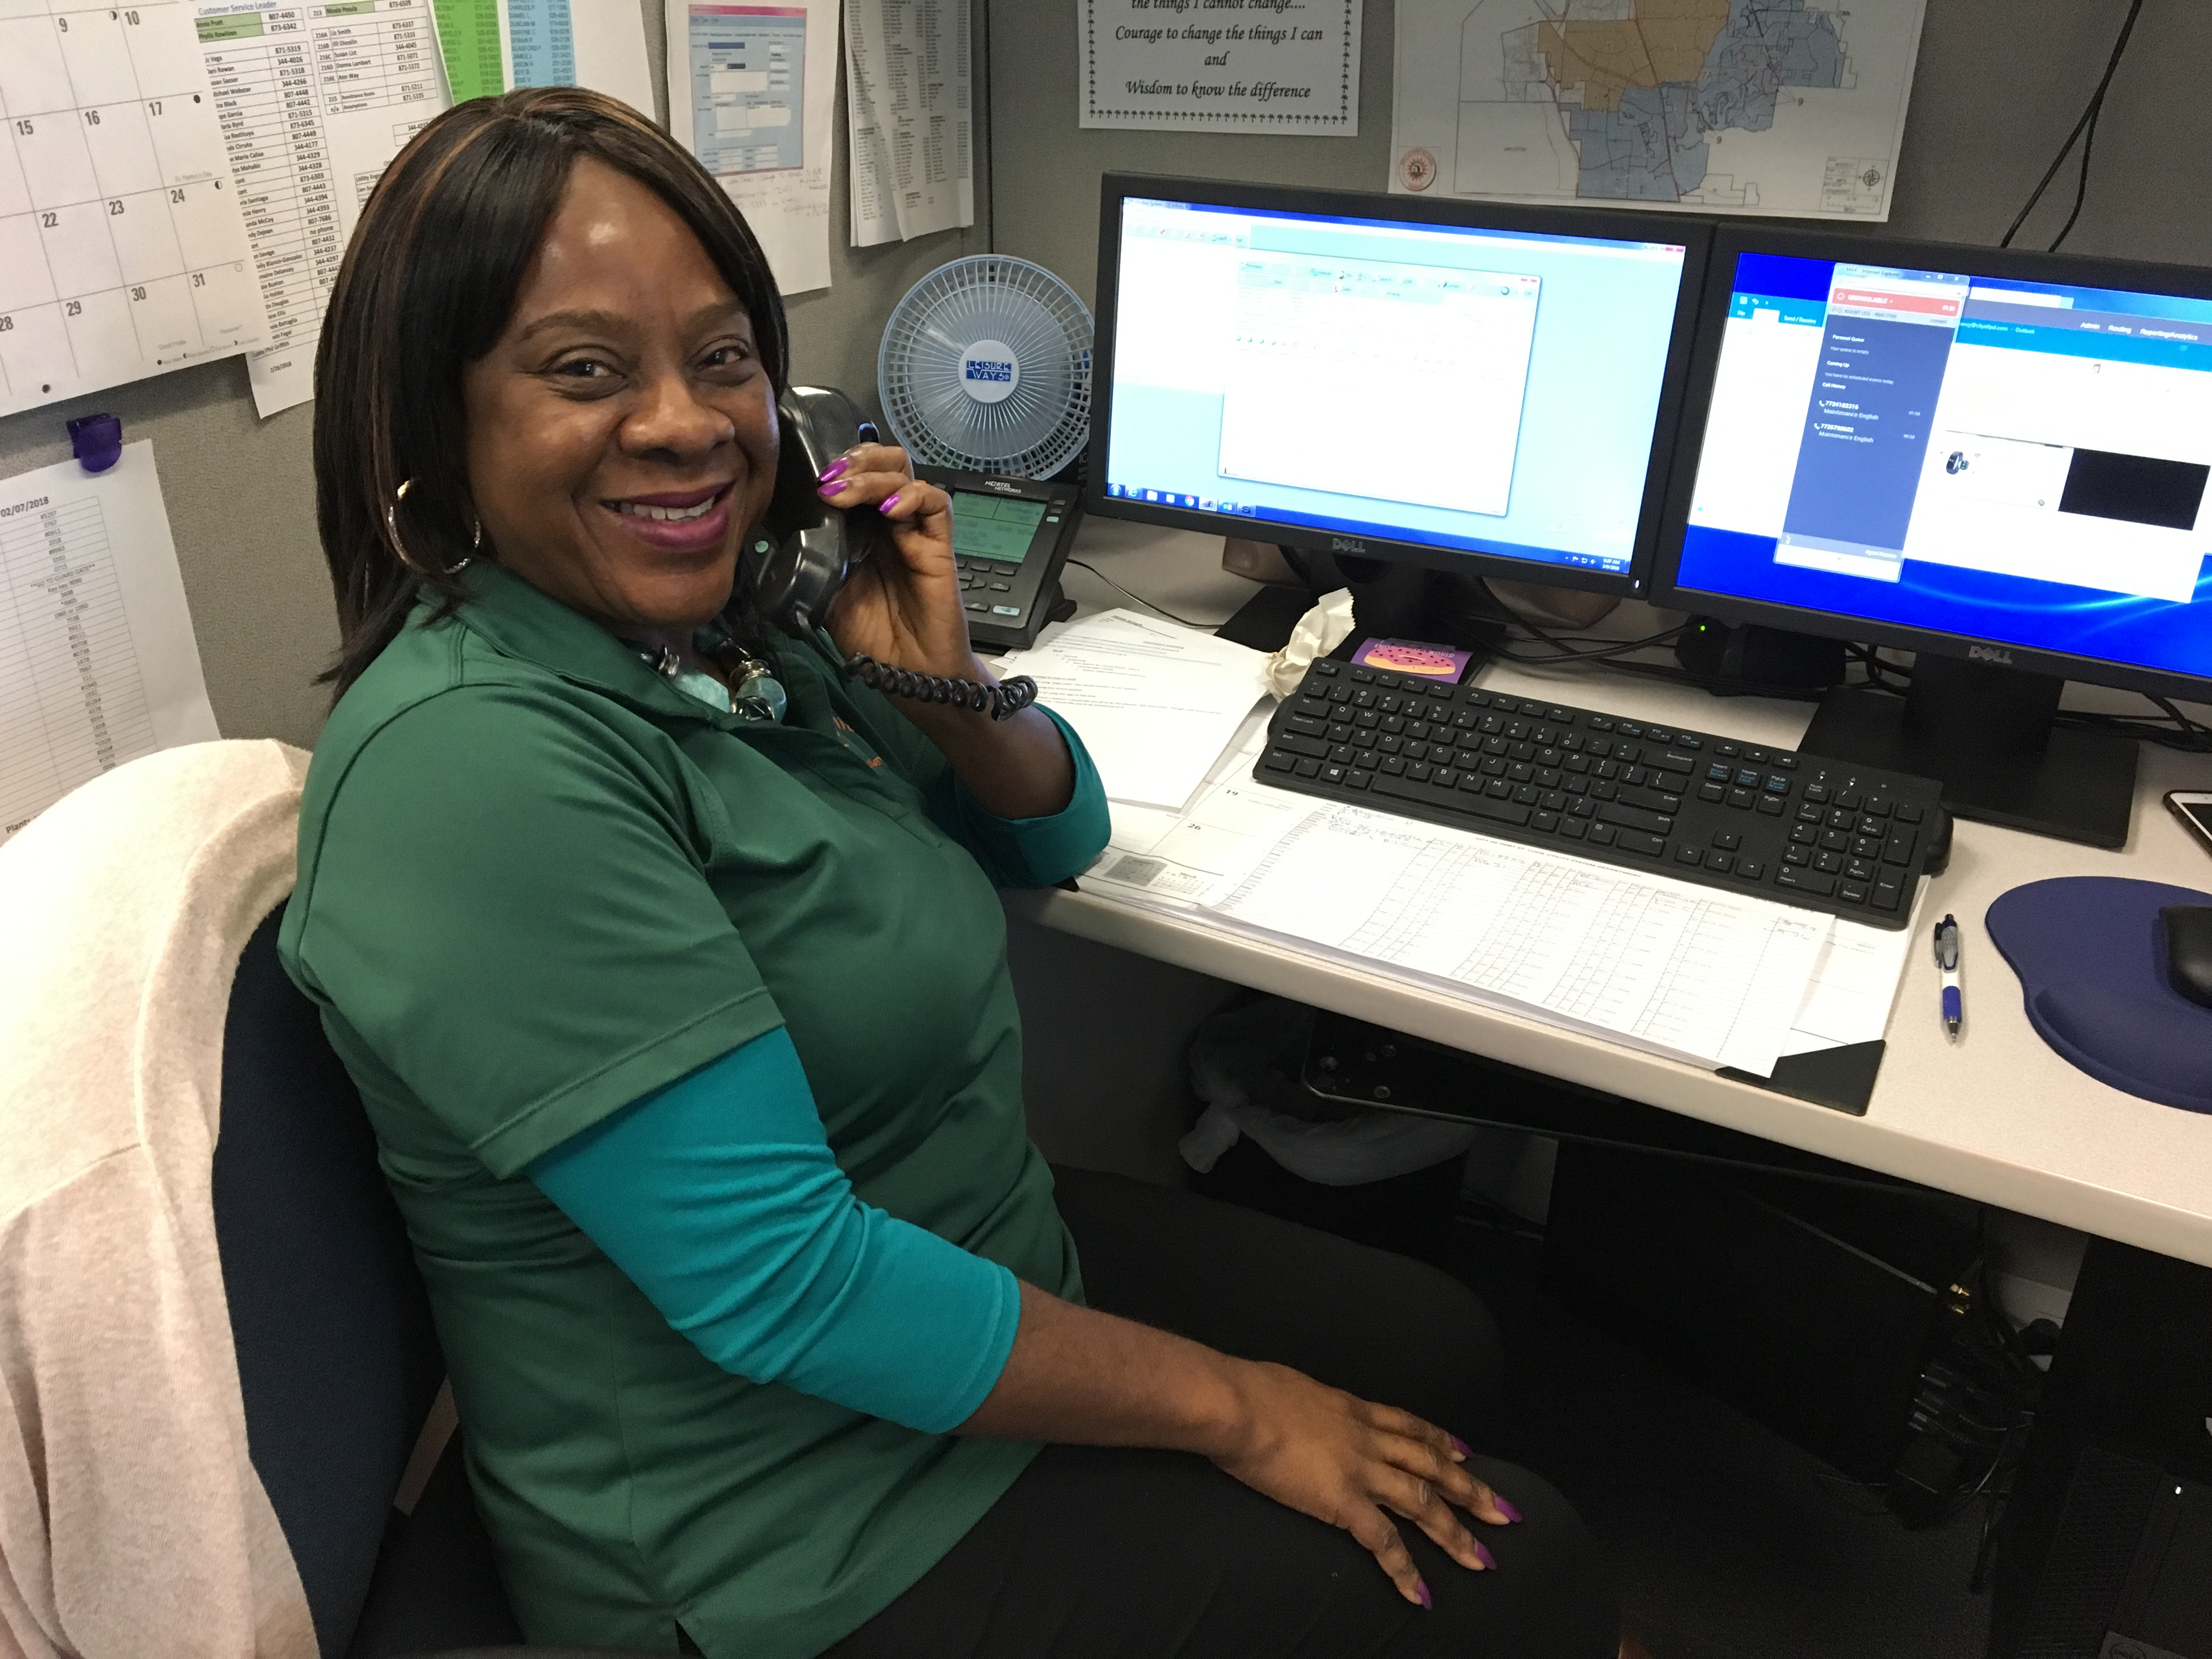 Customer Service Specialist smiling while speaking to a customer on the phone